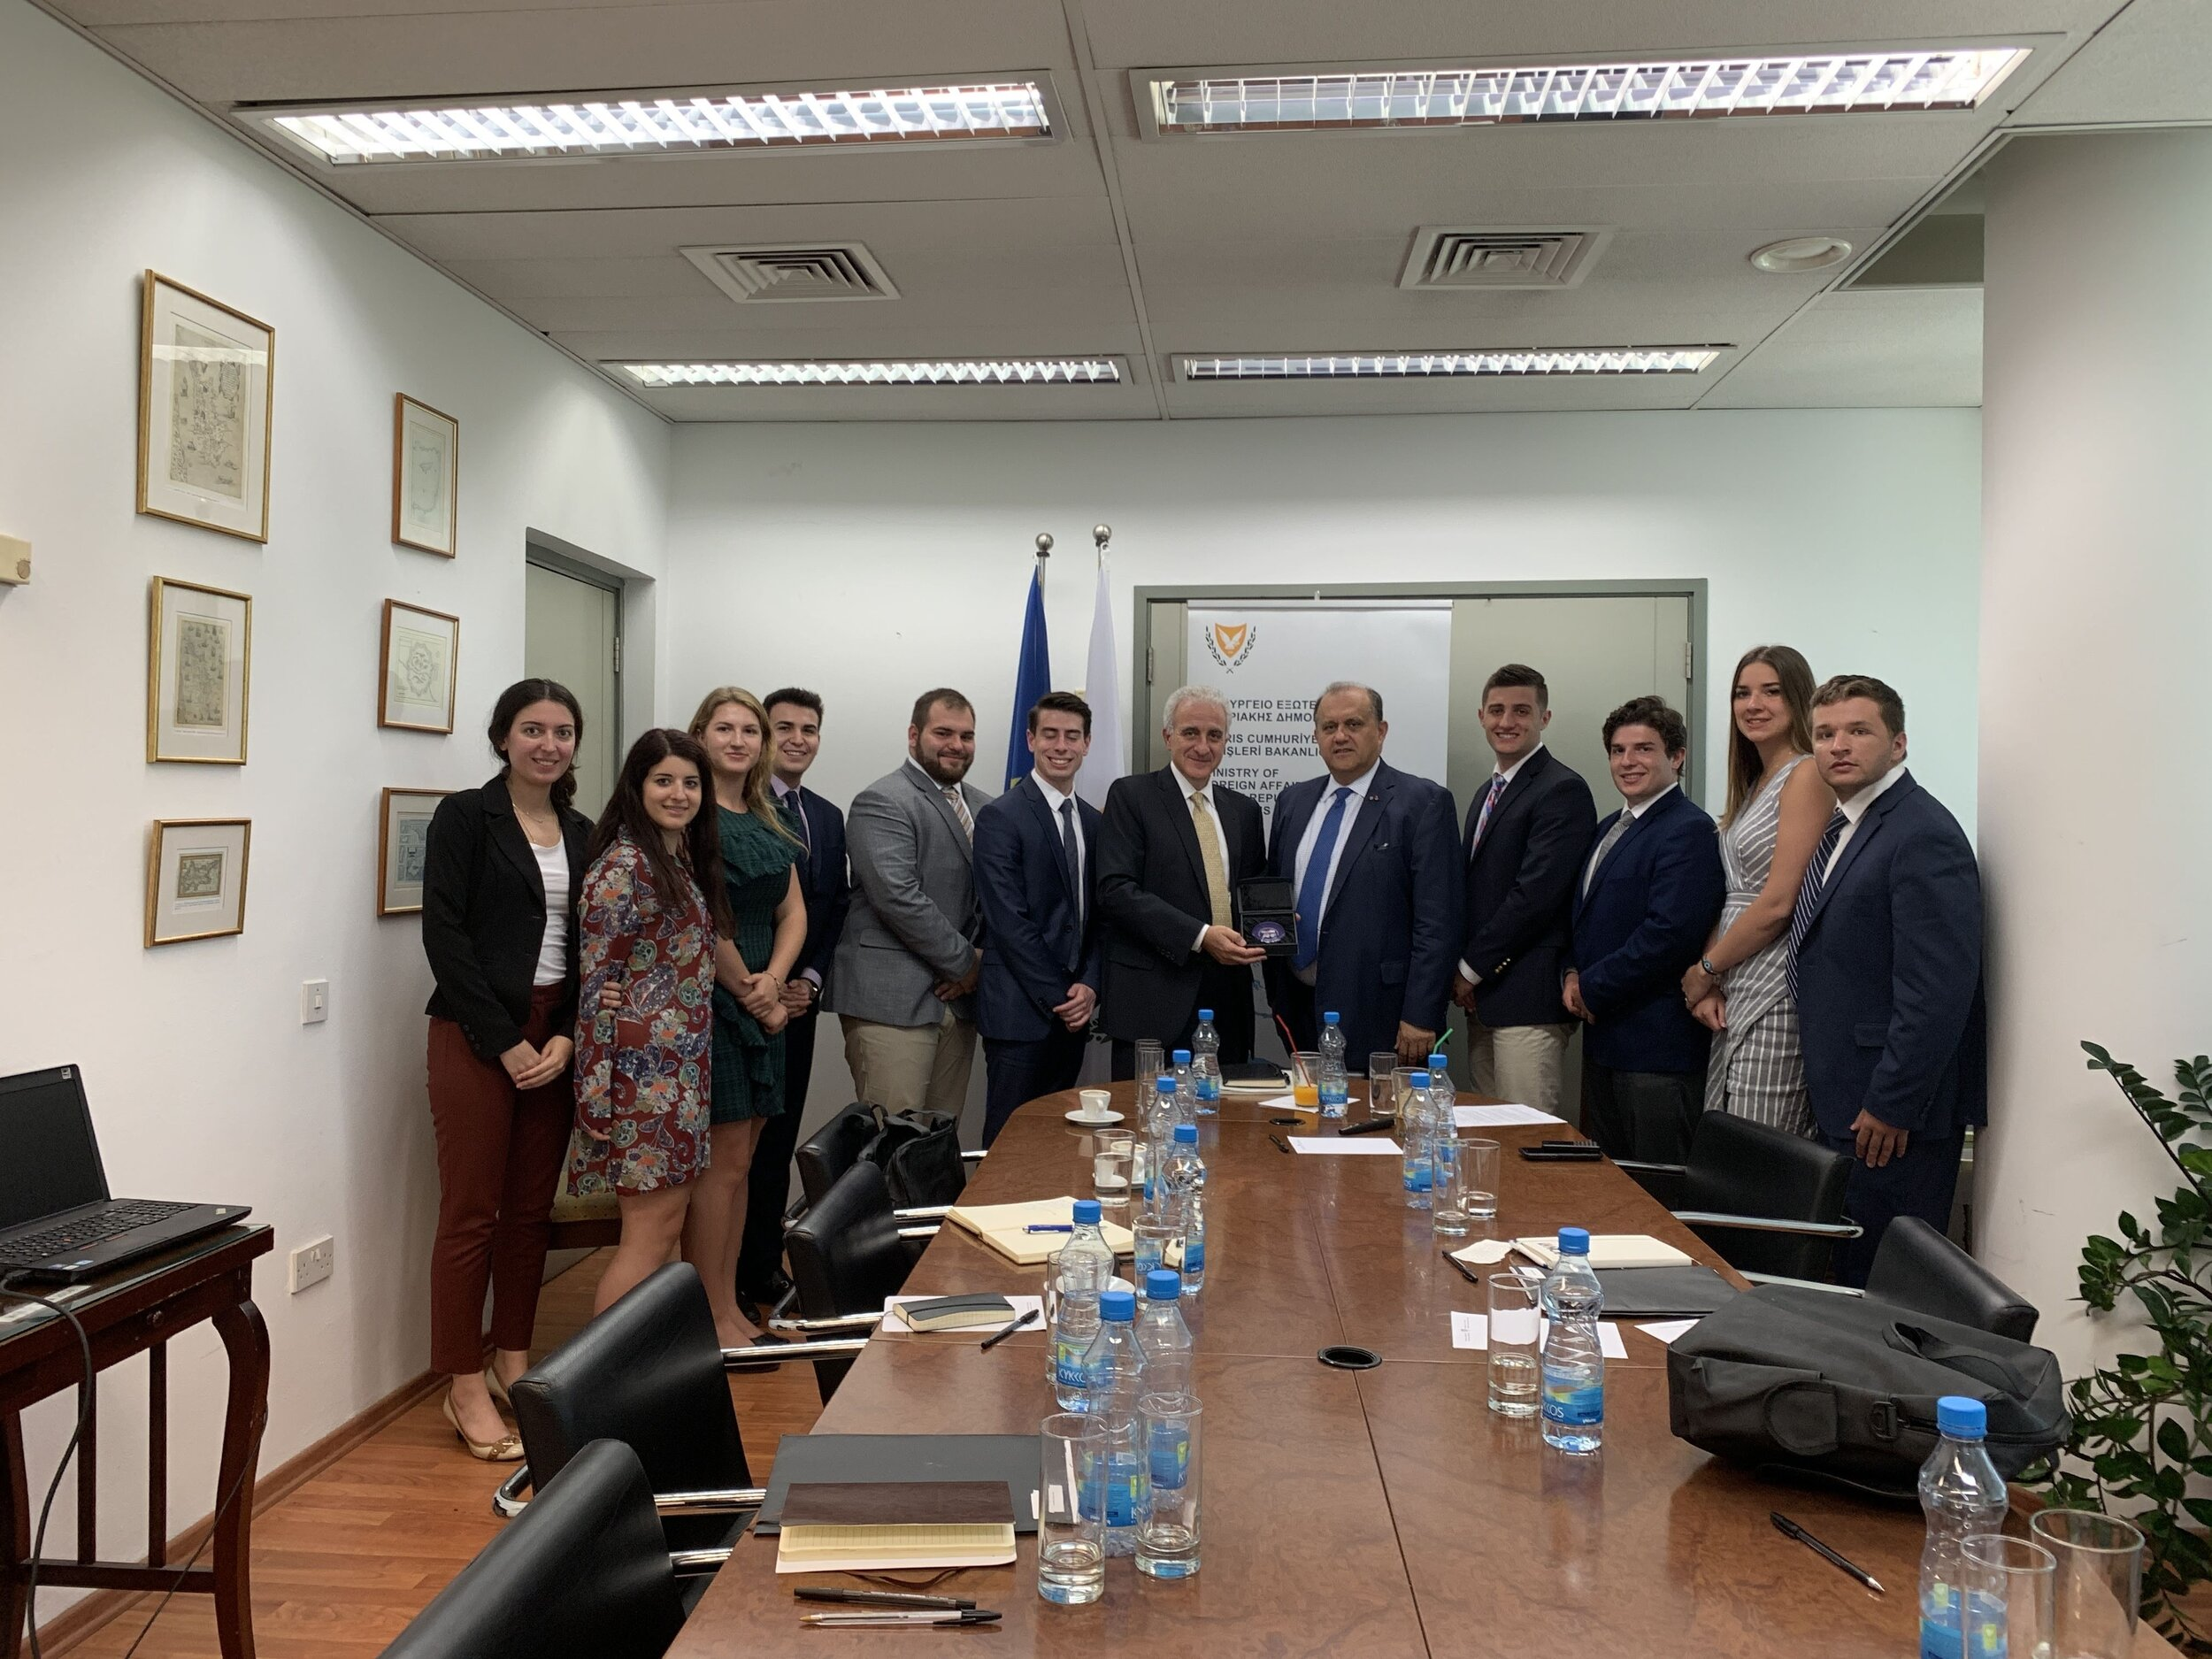 Students meeting with Director of Middle East and North Africa Directorate Ambassador Andreas Kakouris, a former Ambassador of Cyprus to the United States.